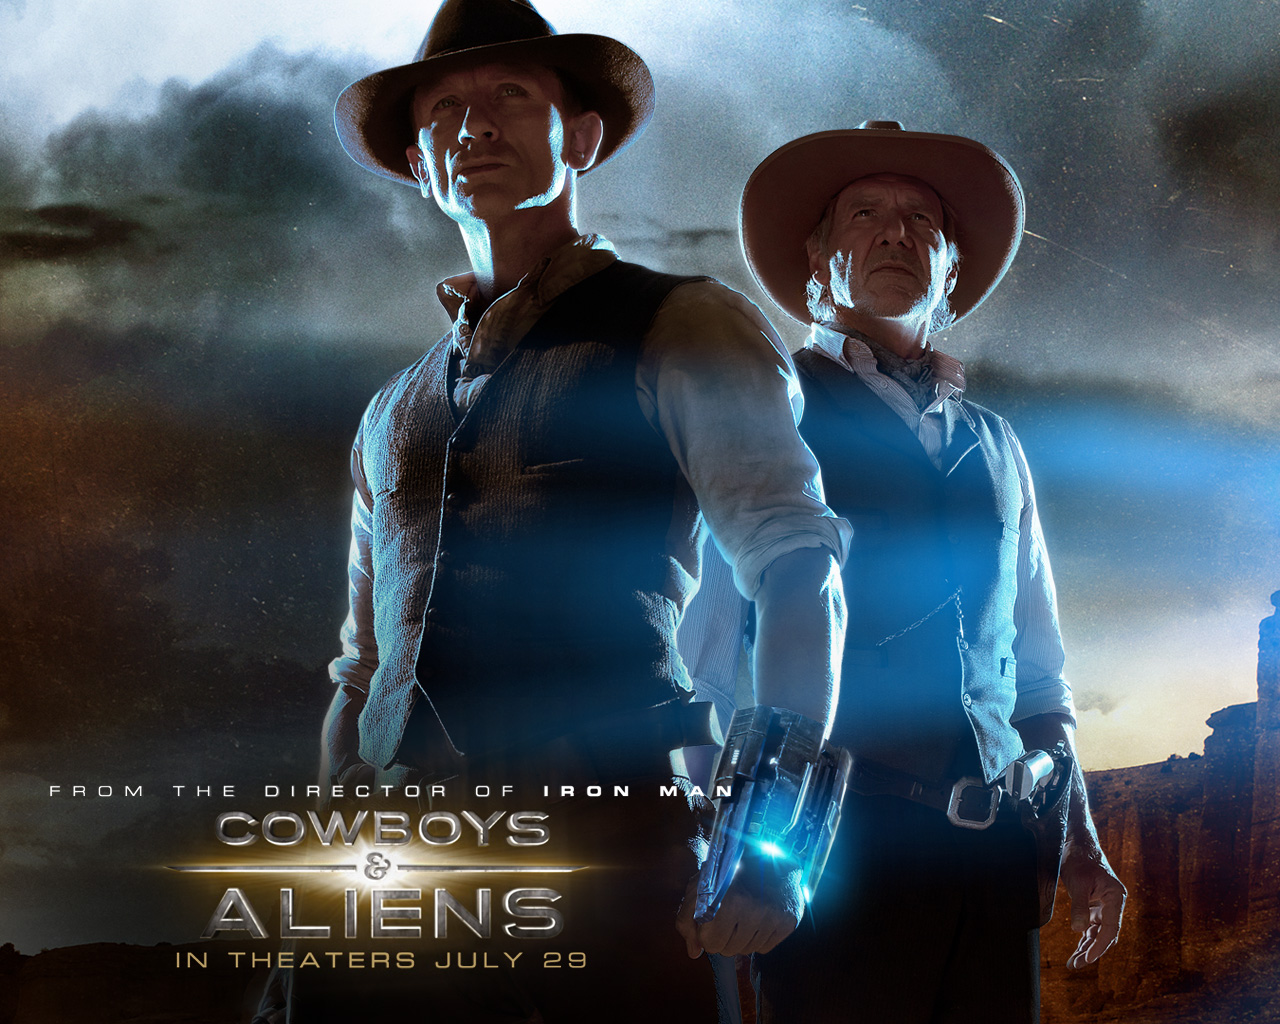 A MILLION OF WALLPAPERS.COM: COWBOYS & ALIENS MOVIE WALLPAPERS